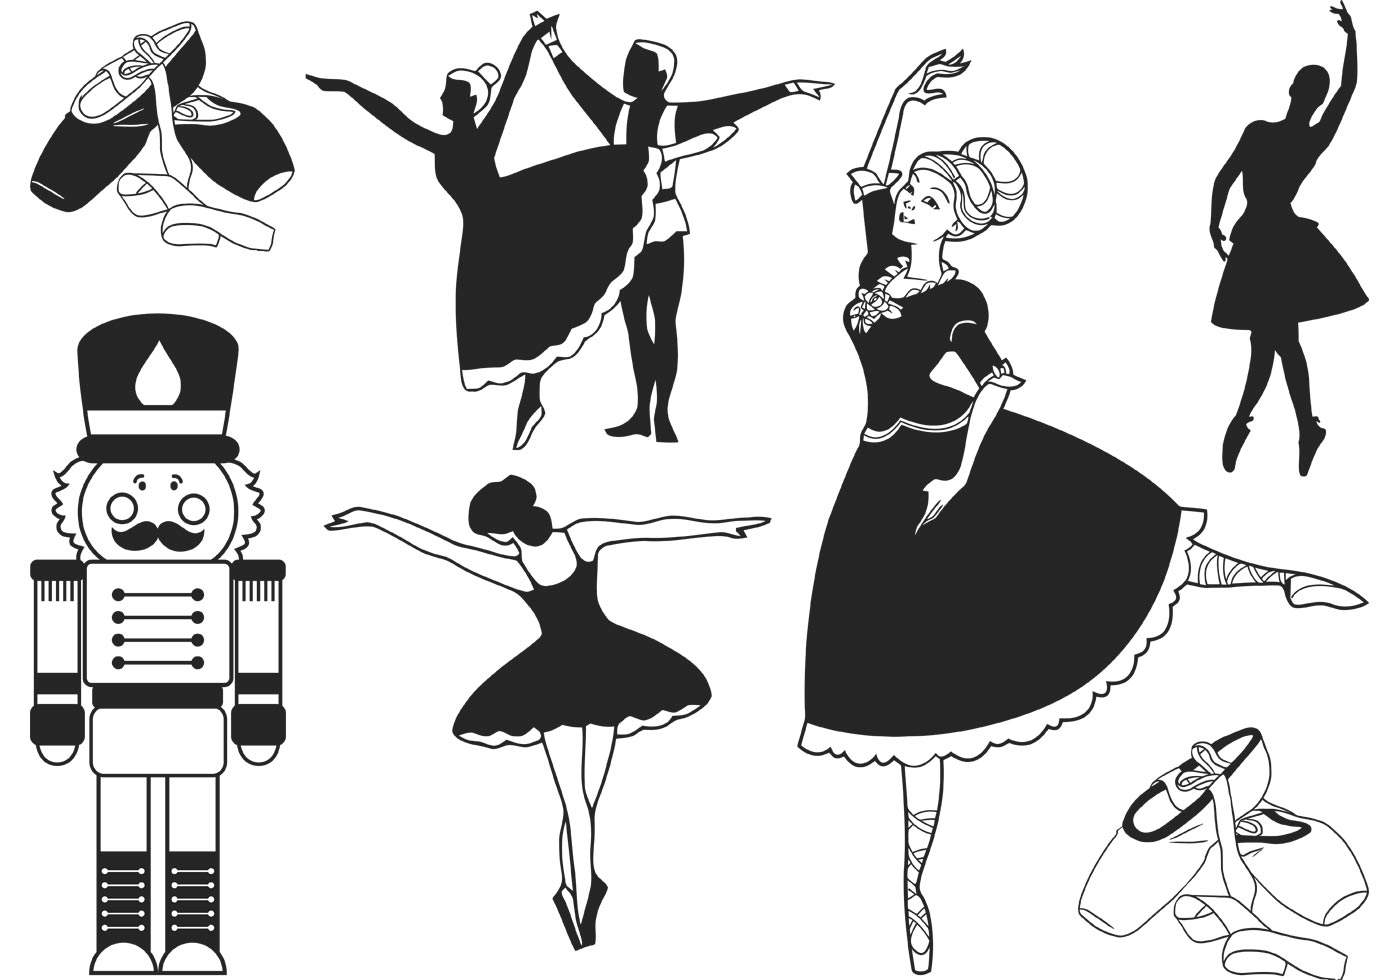 Beer mug silhouette clip art besides Ballerina Coloring Page 21053908 together with Tying Shoes Cliparts also 250 Barbie Ballerina Coloring Page furthermore Ballet Shoes 1220 Outline. on ballet shoes clip art